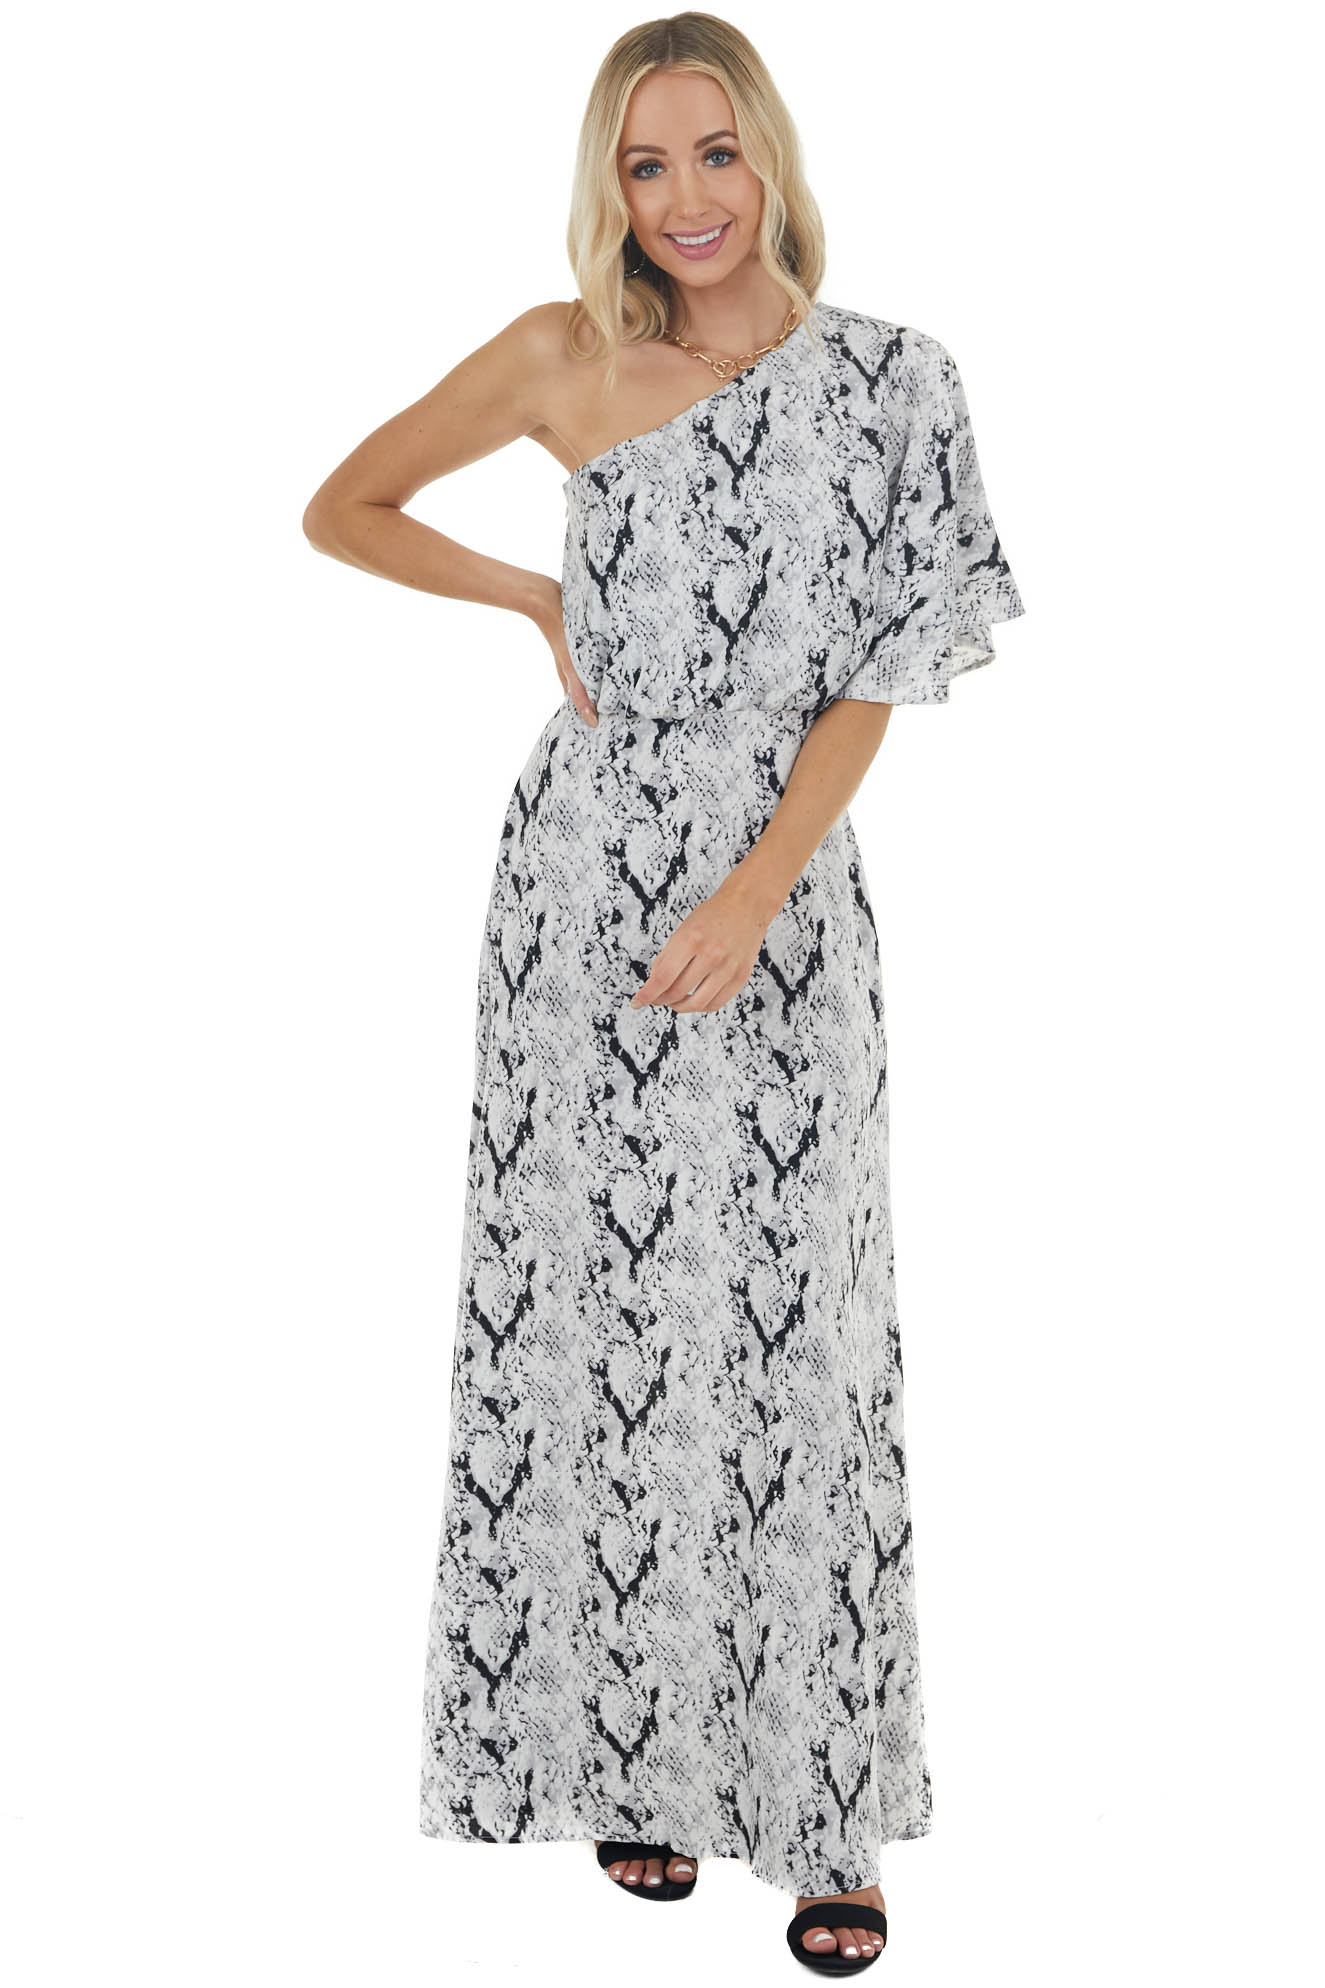 Dove Grey Snakeskin Print Woven Maxi Dress with One Shoulder